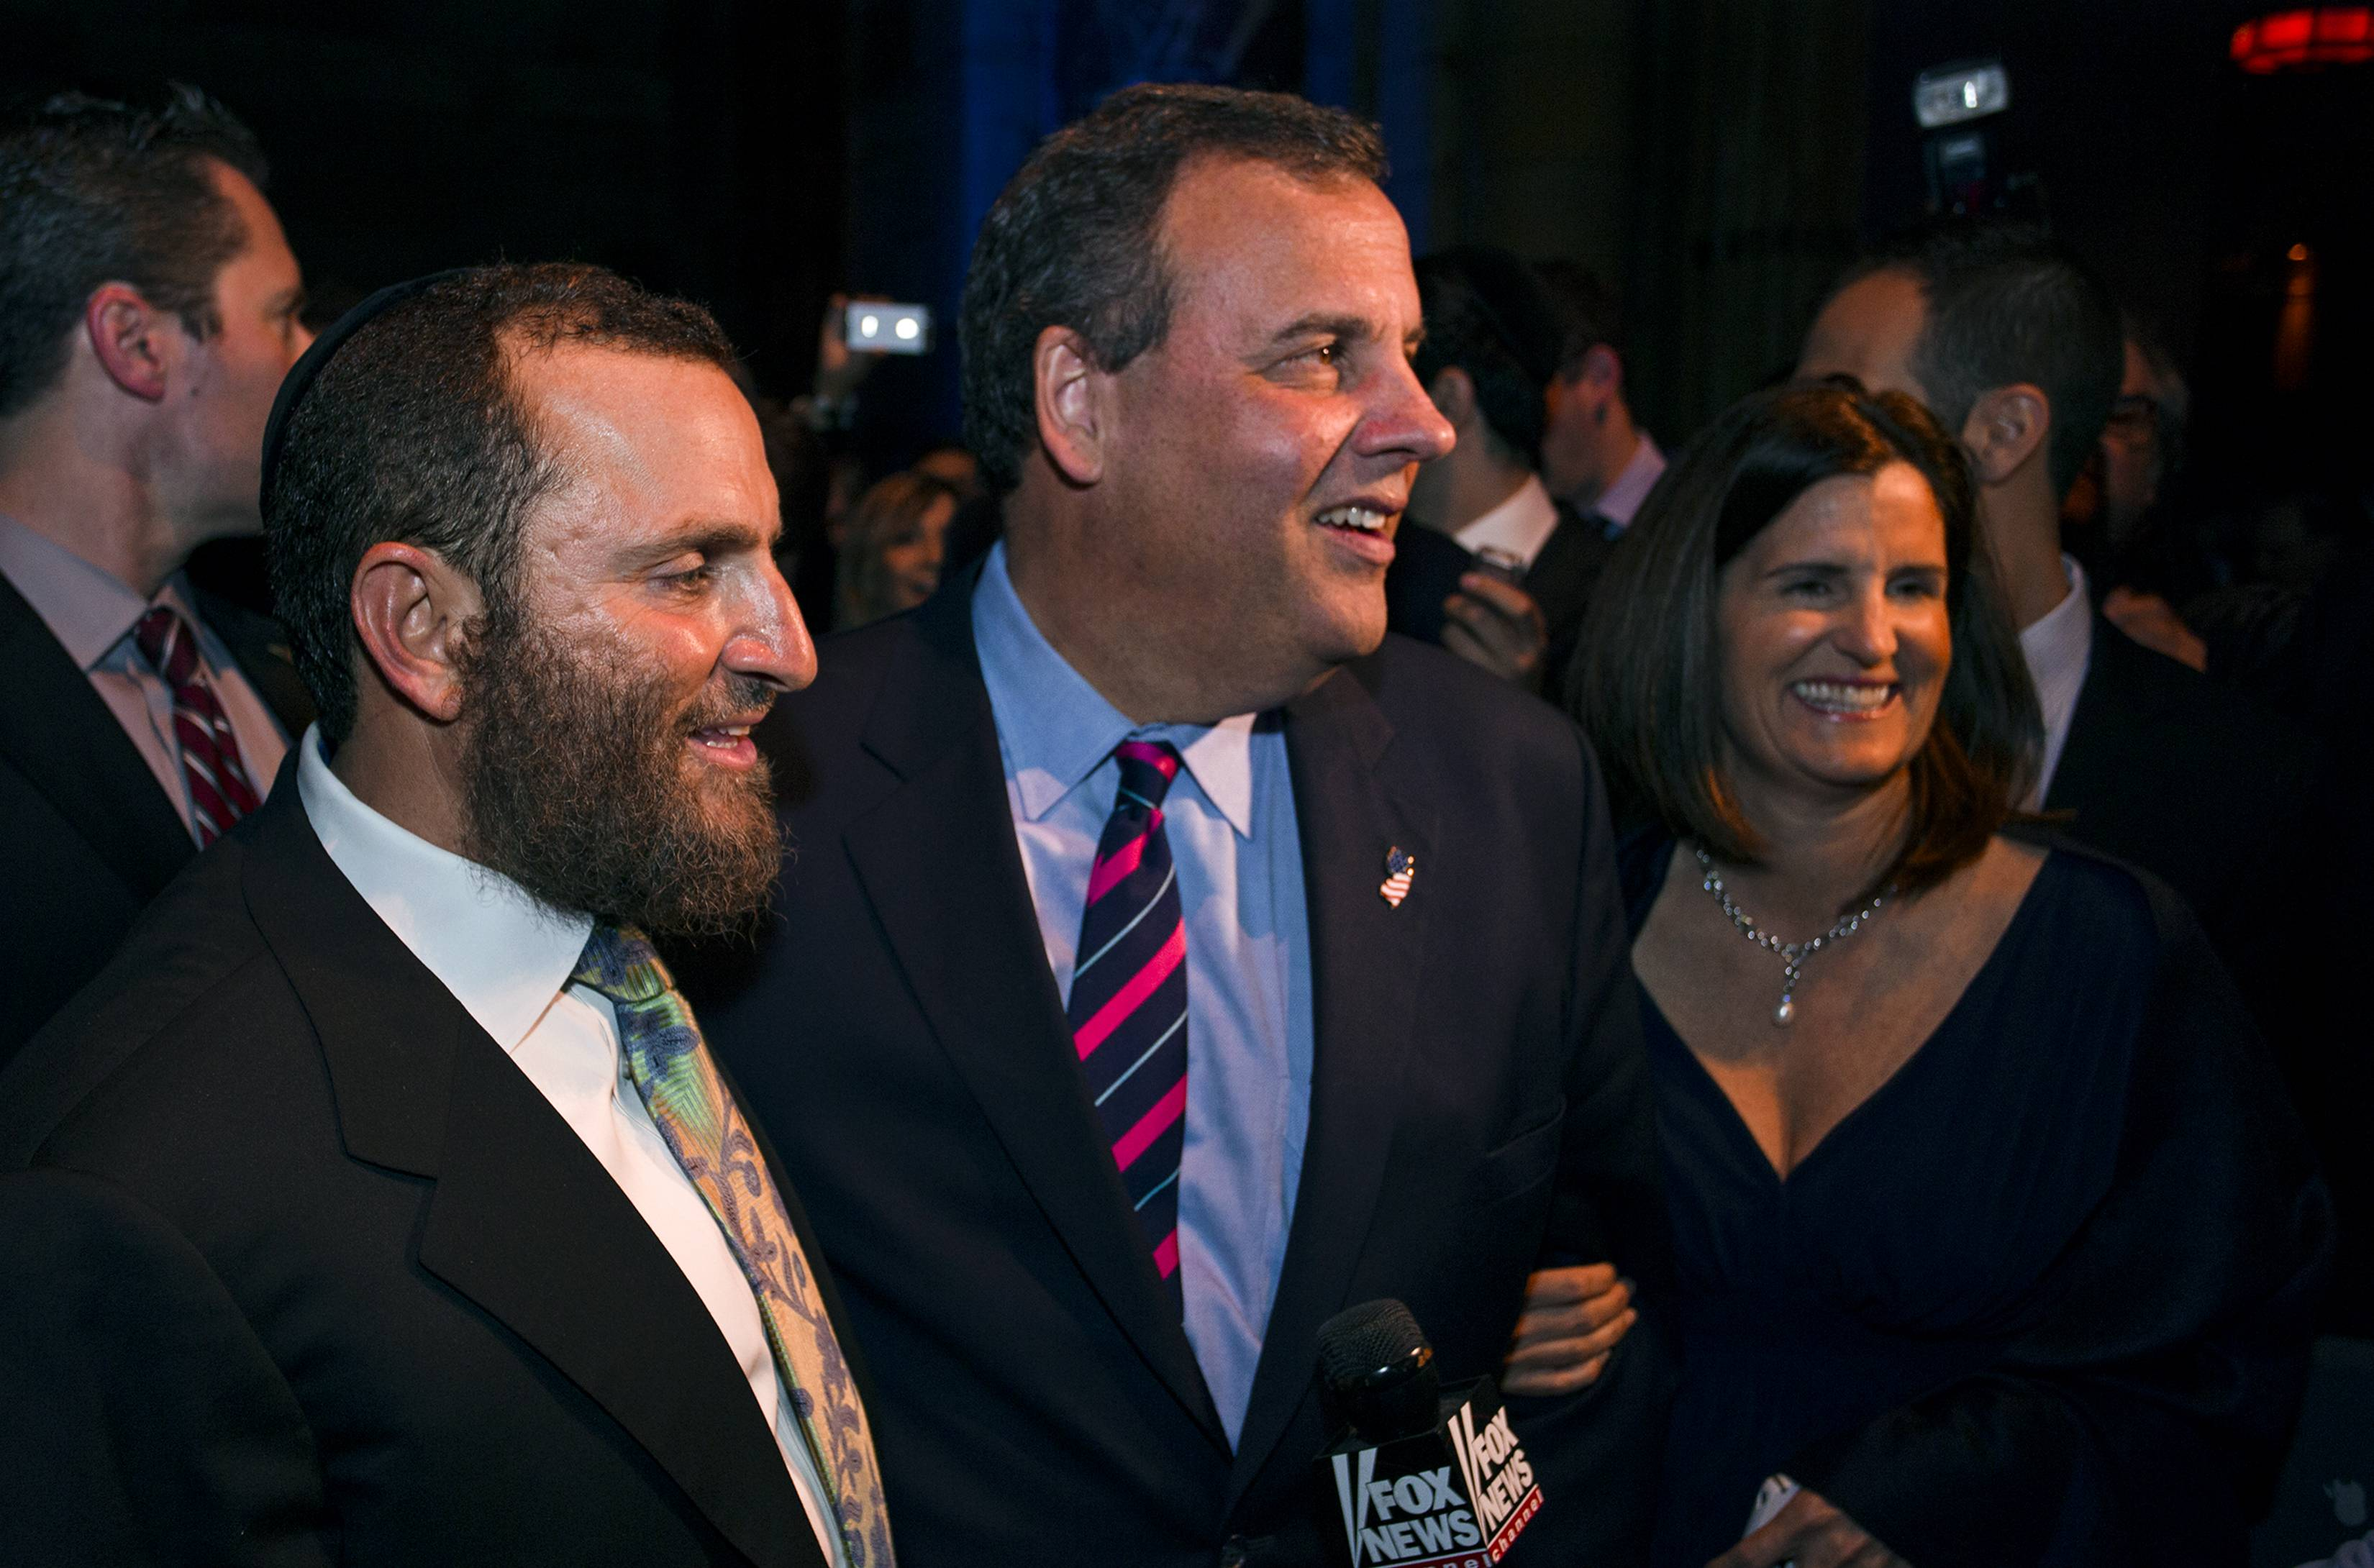 Gov. Chris Christie, center, walks with Rabbi Shumley Boteach as he attends the Champions of Jewish Values International Awards gala in New York on Sunday. At right is Christie's wife, Mary Pat.